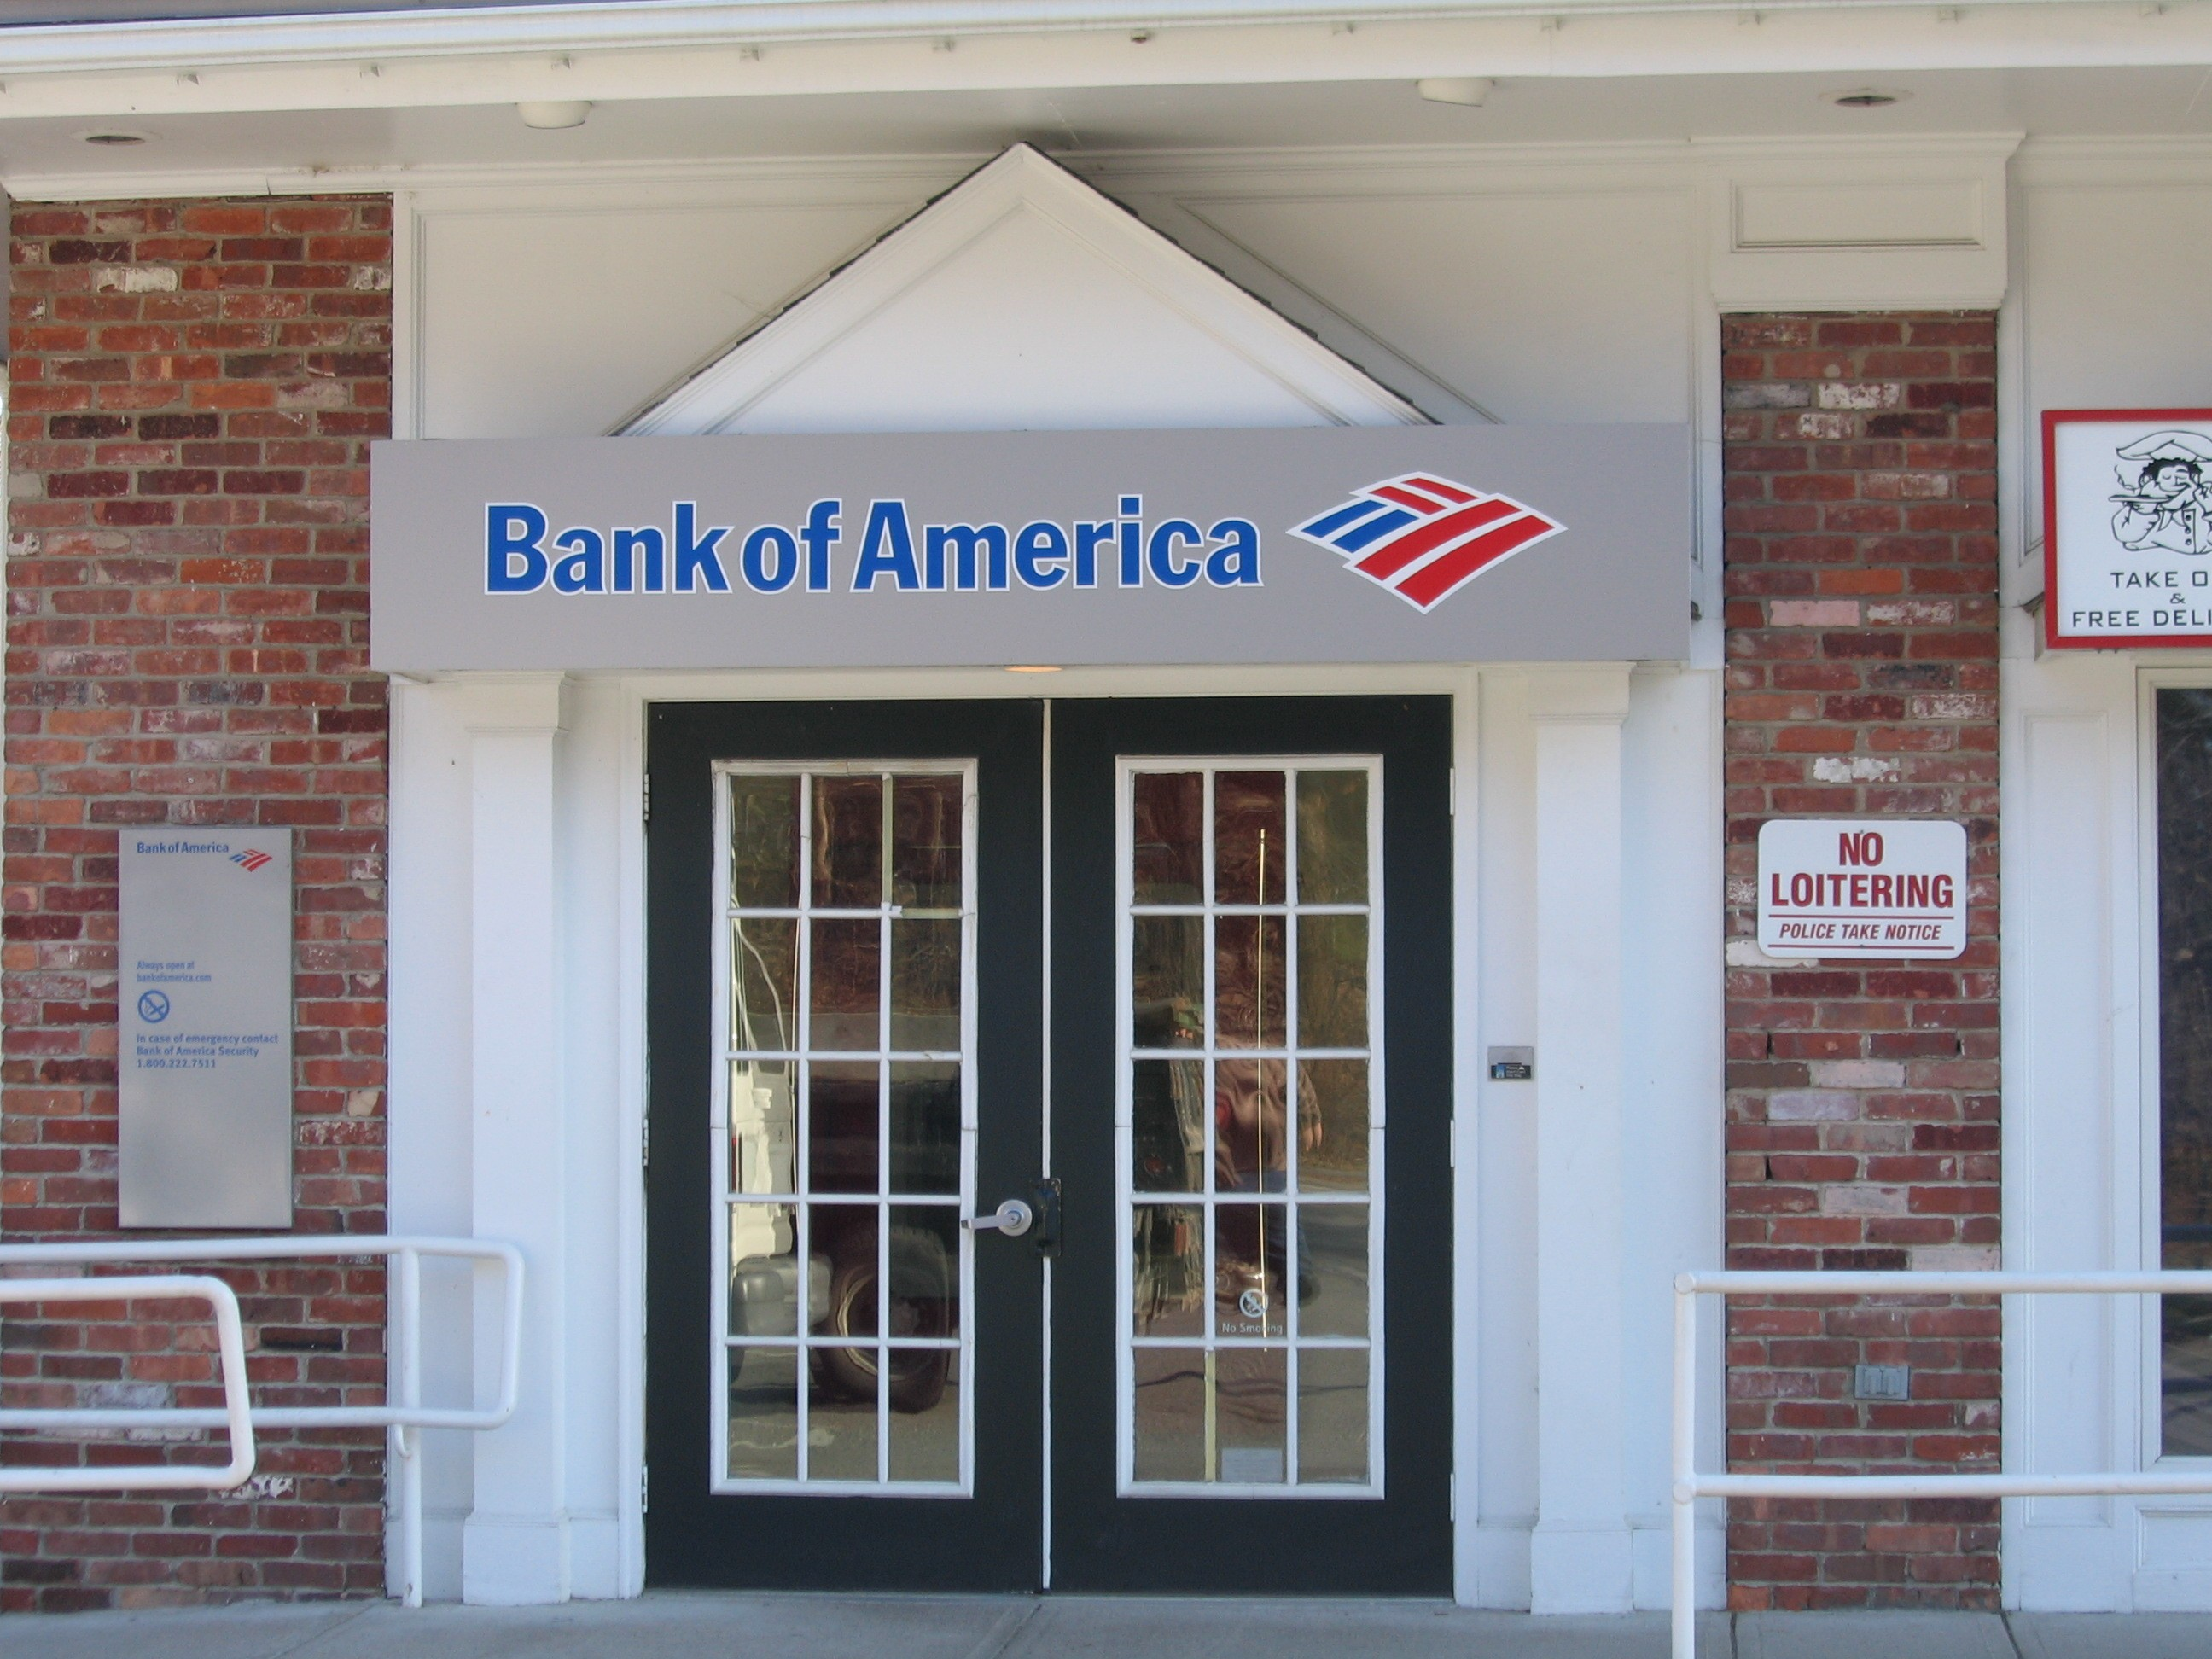 Steps To Qualify For A Bank of America Car Loan